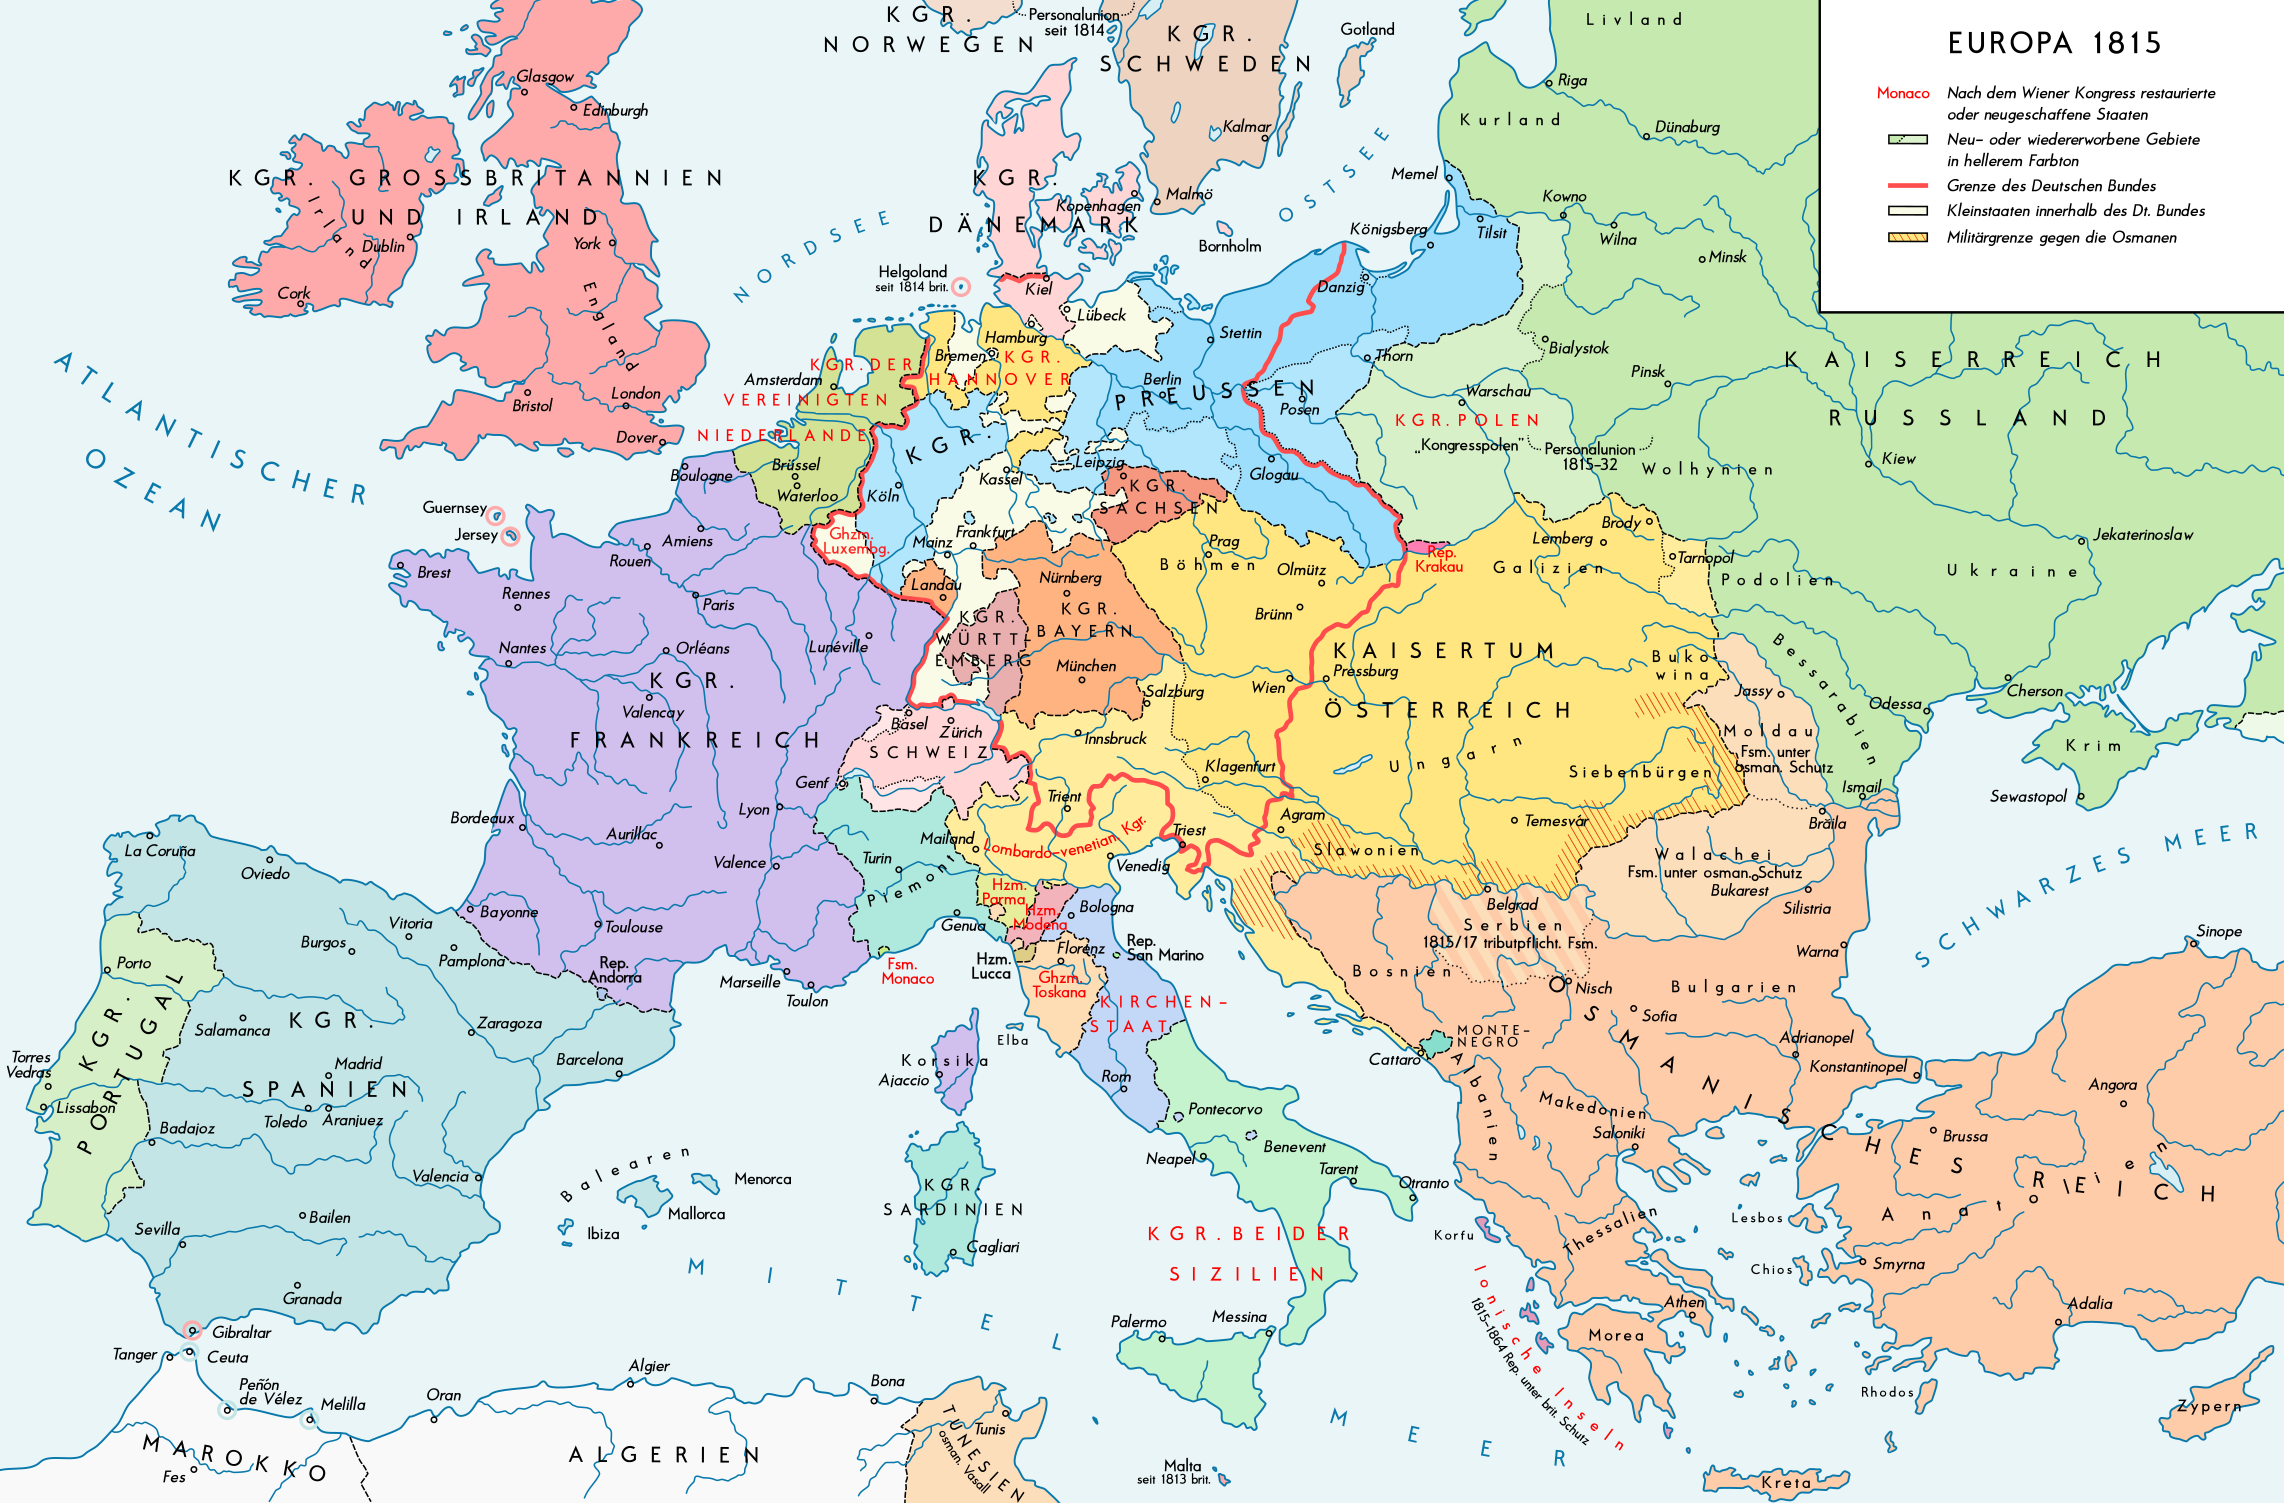 Europe 1815 Map En With Political Of 2017 - picturetomorrow